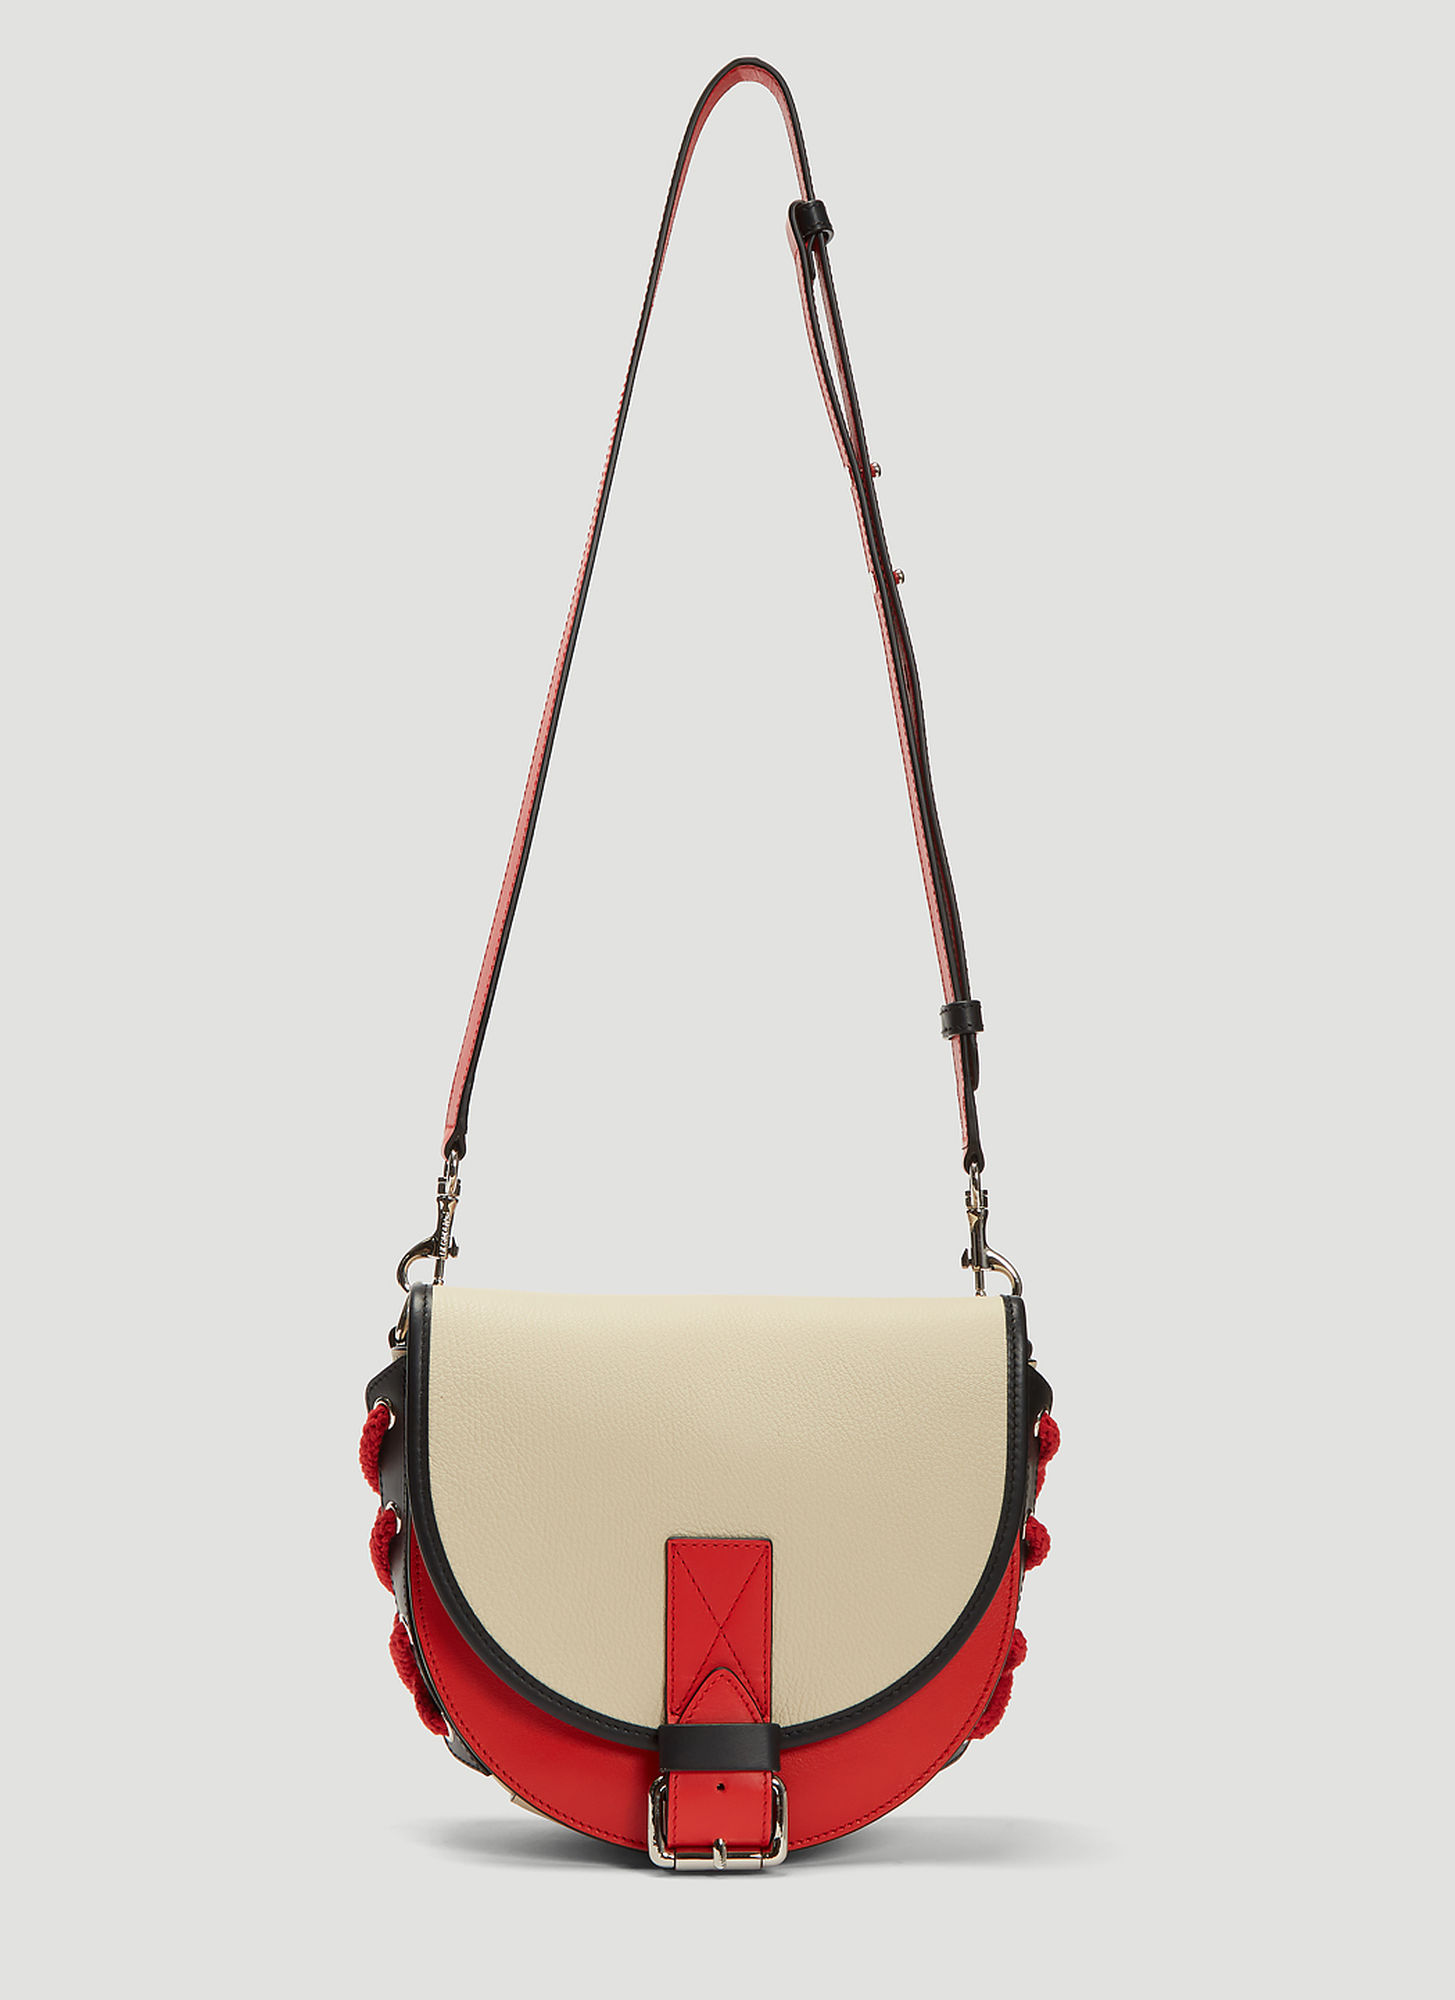 1ee8cd8875c9 jw-anderson-small-bike-shoulder-bag -in-cream-size-one-size-ln-cc-photo.jpg 1547431570